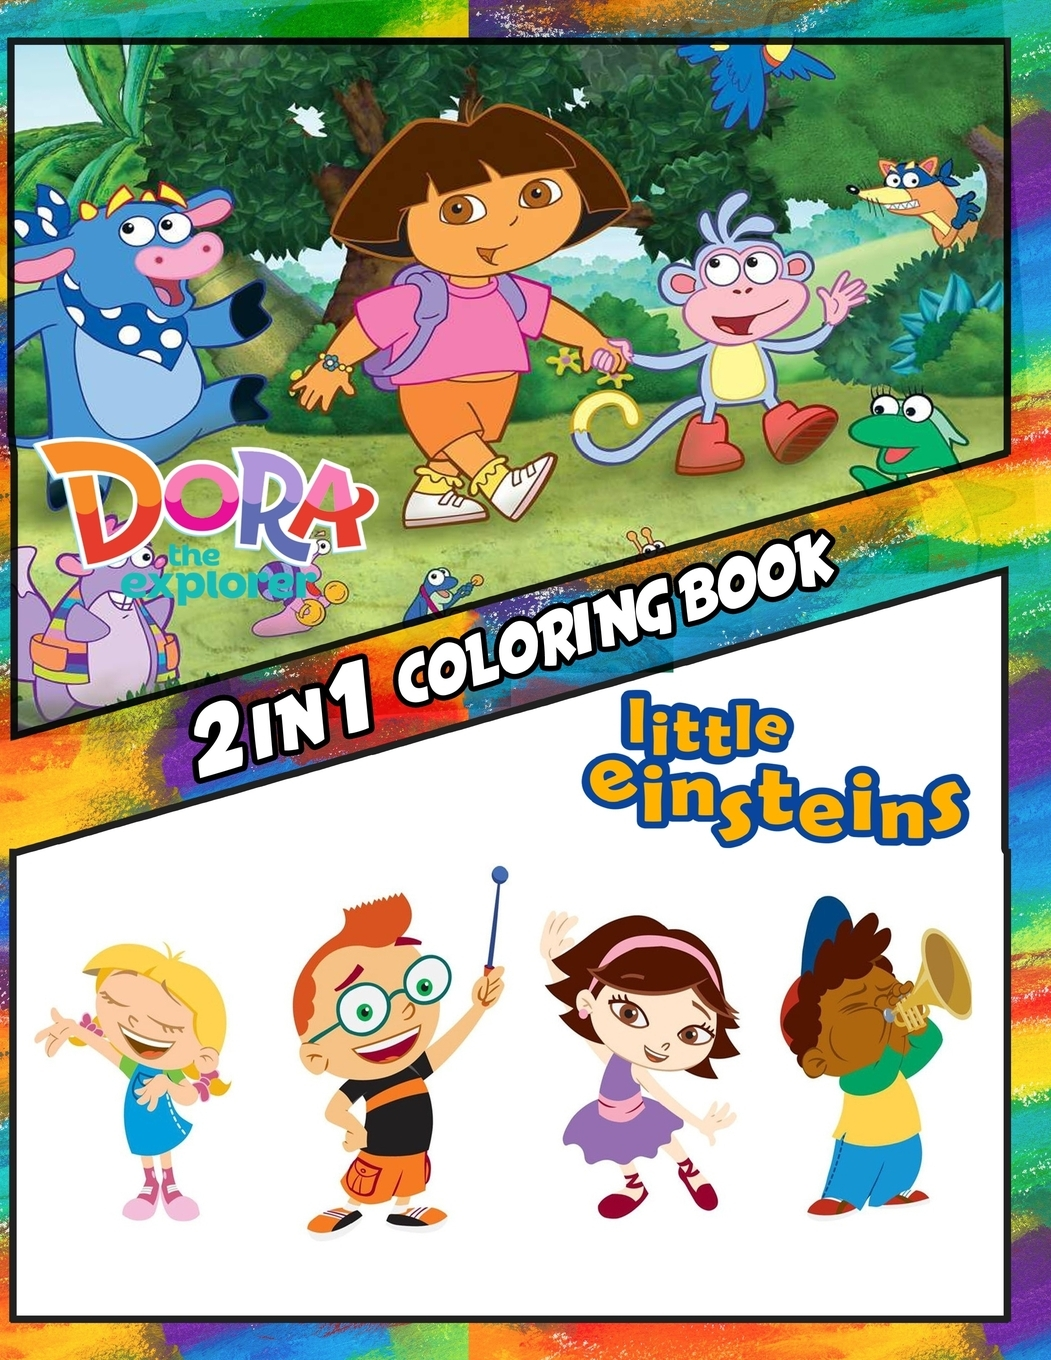 - 2 In 1 Coloring Books For Children, Kids 4-12 And Adults: 2 In 1